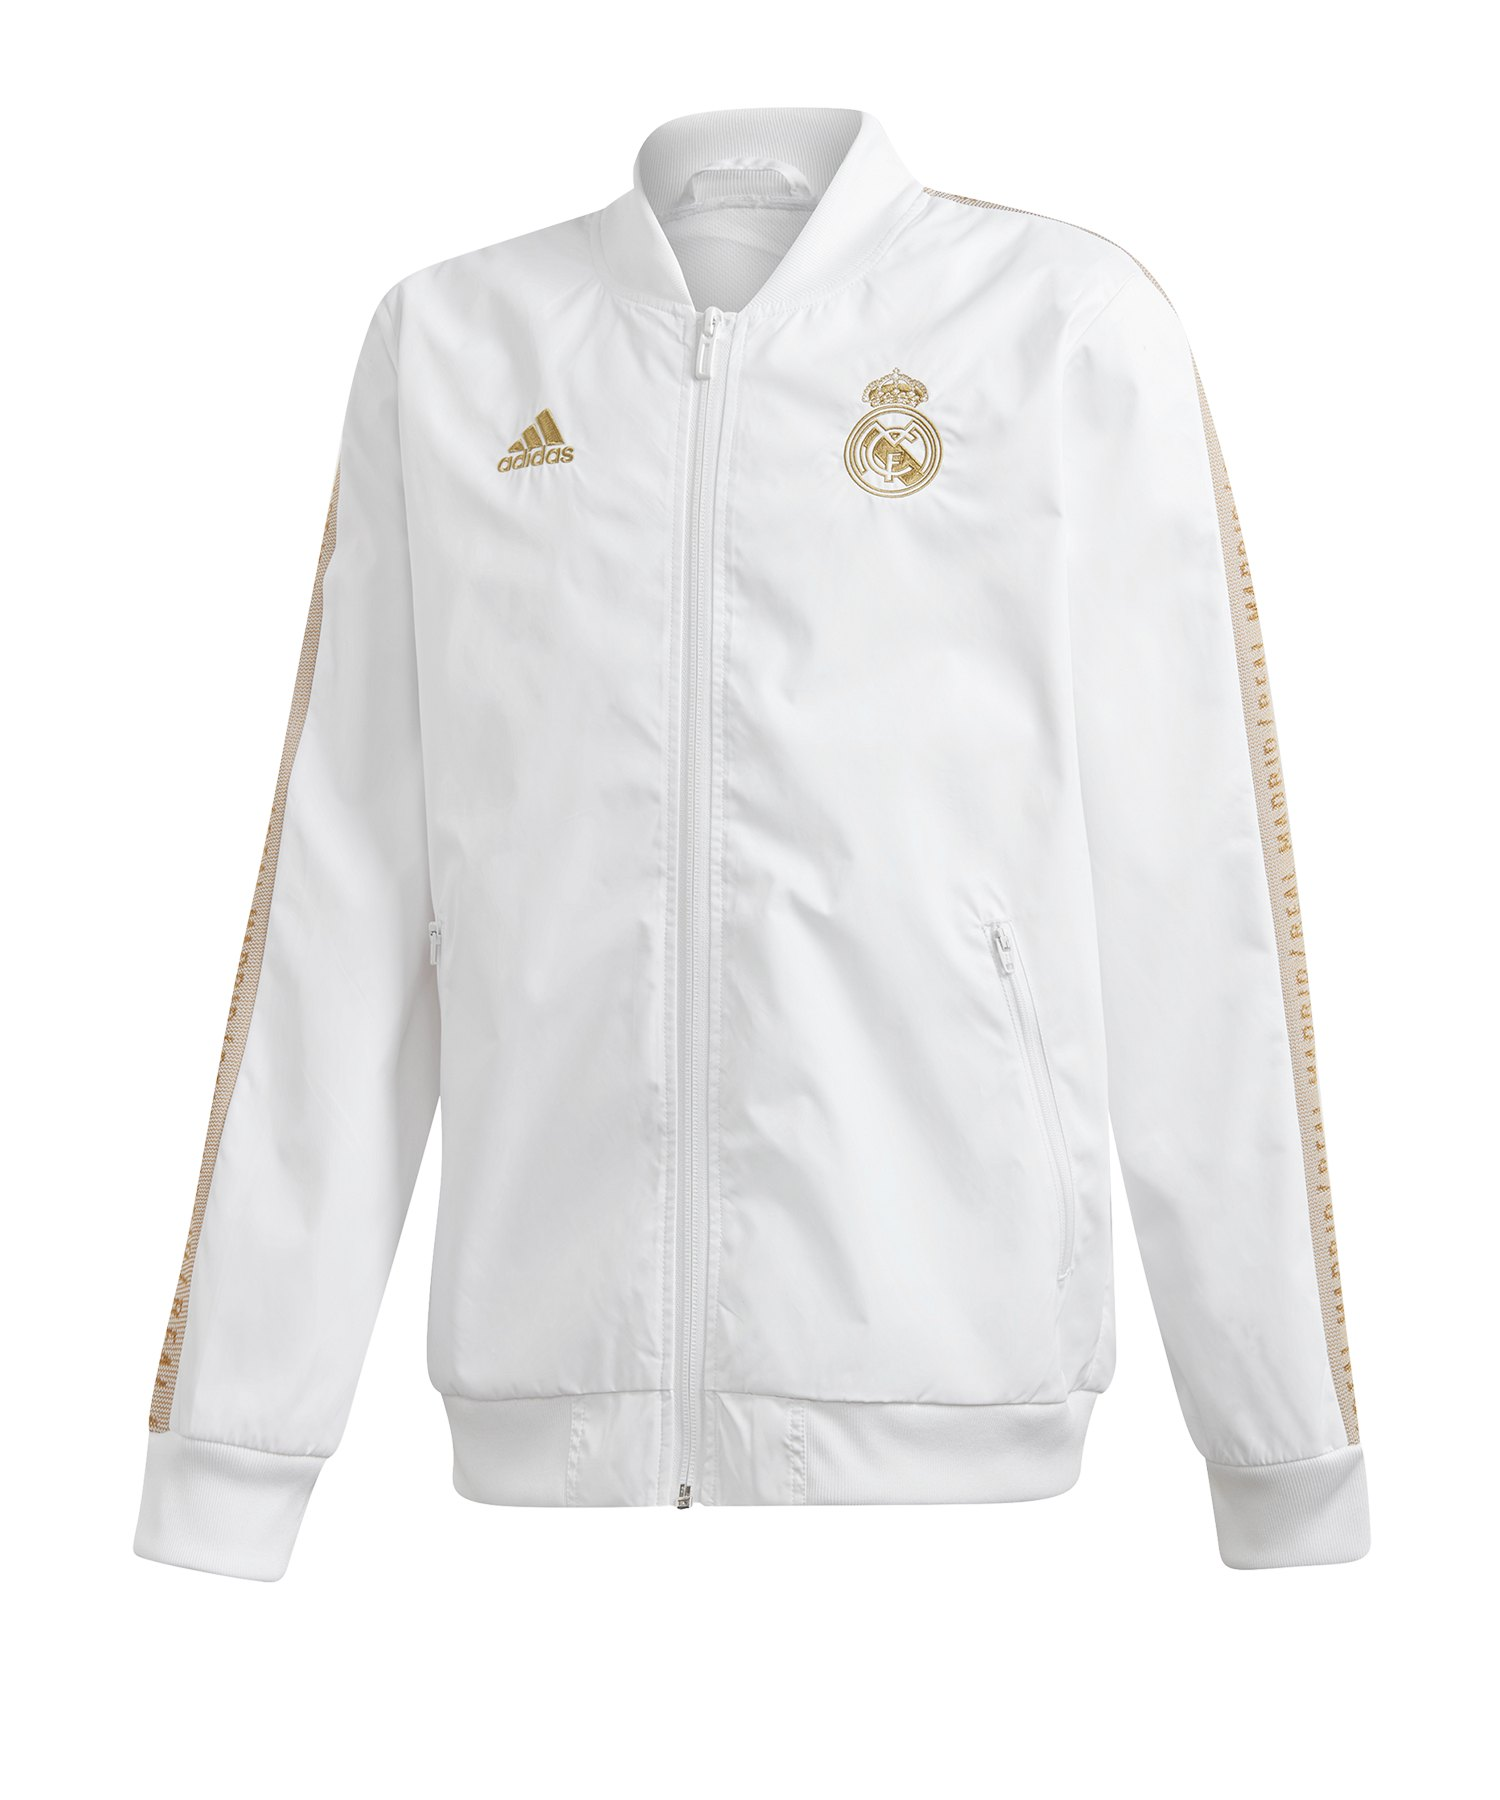 adidas Real Madrid Anthem jacket Kids Weiss - Weiss